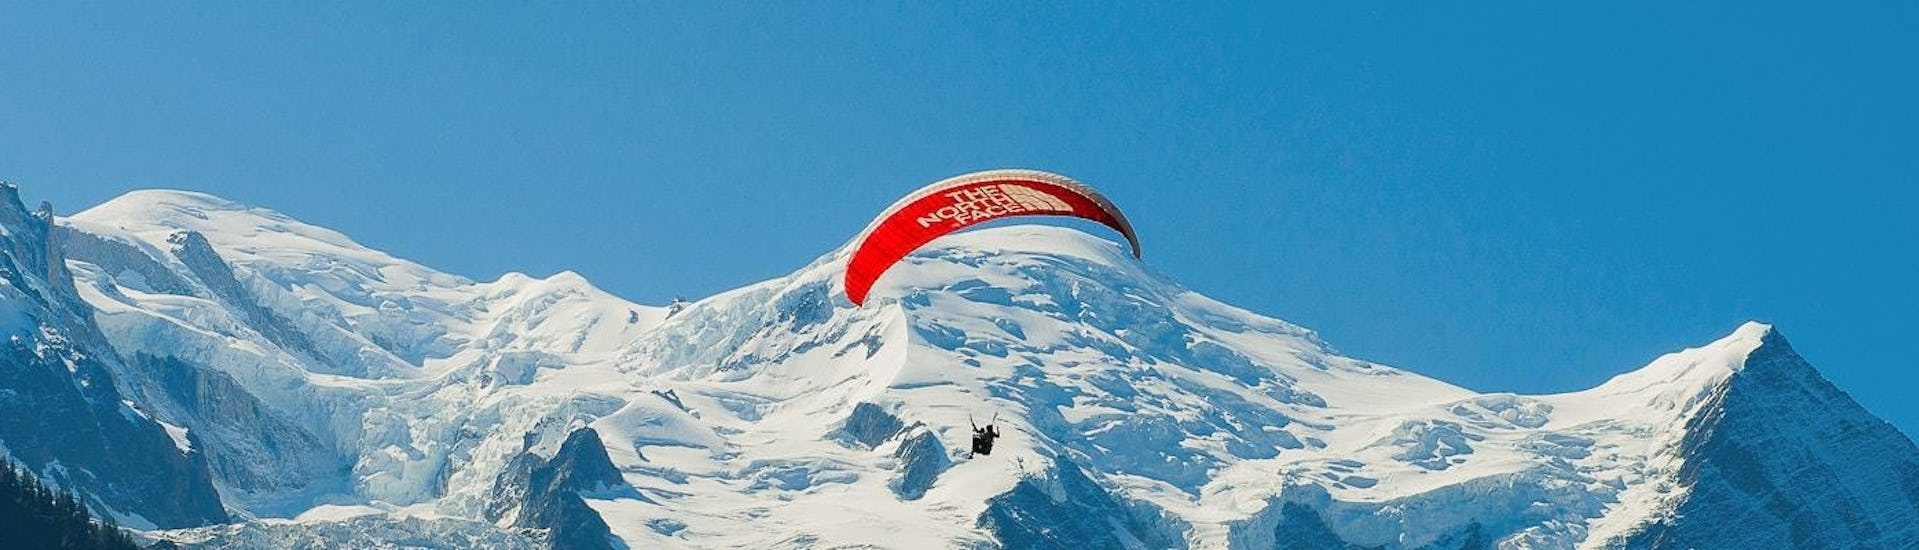 A paragliding pilot from Kailash Paragliding is flying above the mountains during a Tandem Paragliding Flight from Planpraz - Chamonix.